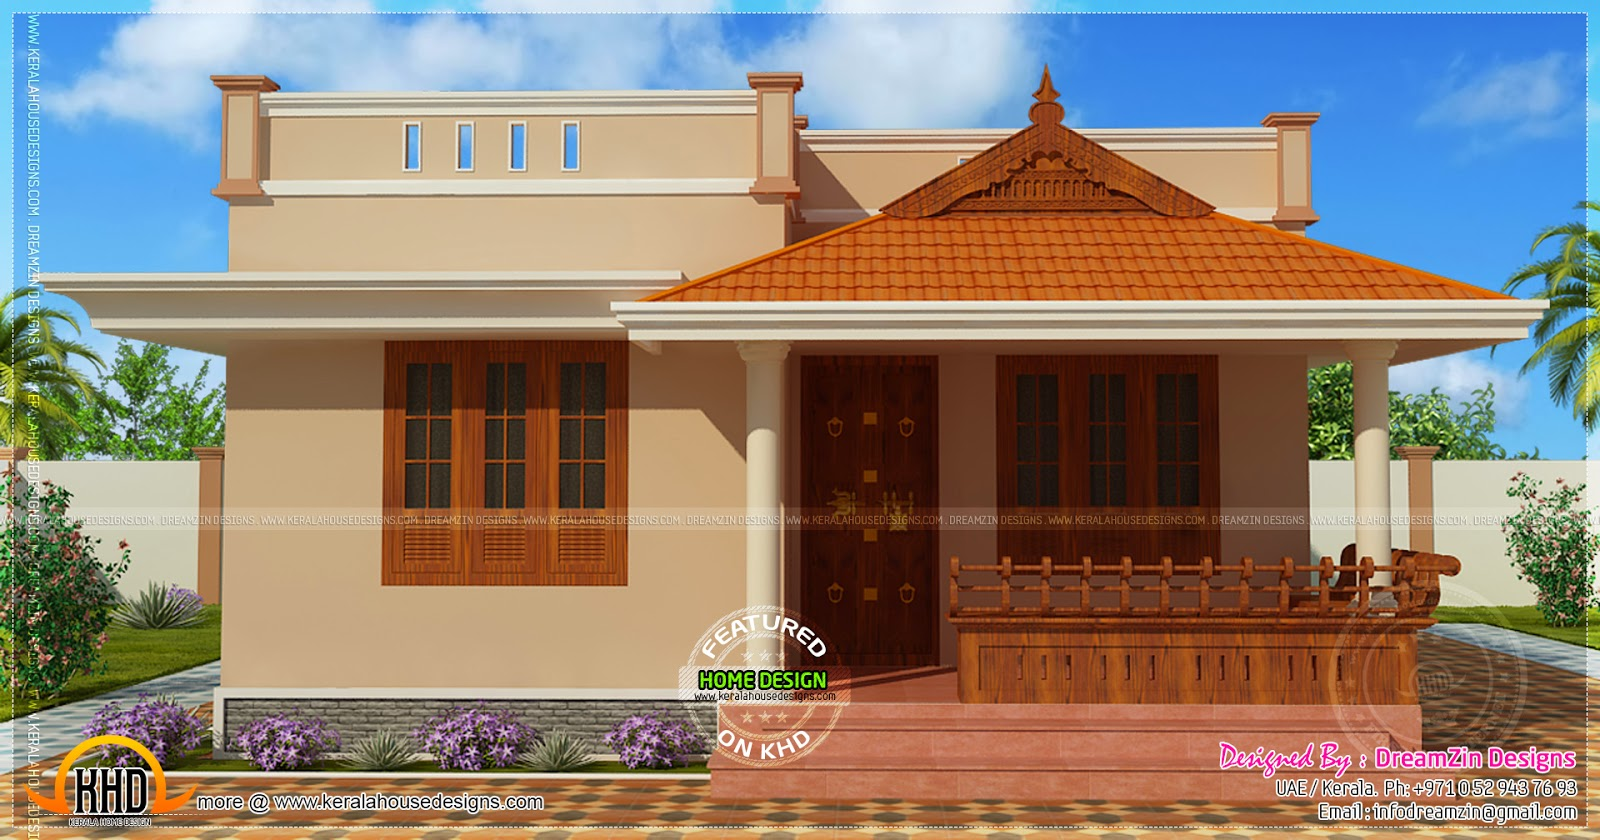 35 small and simple but beautiful house with roof deck for Indian small house design 2 bedroom